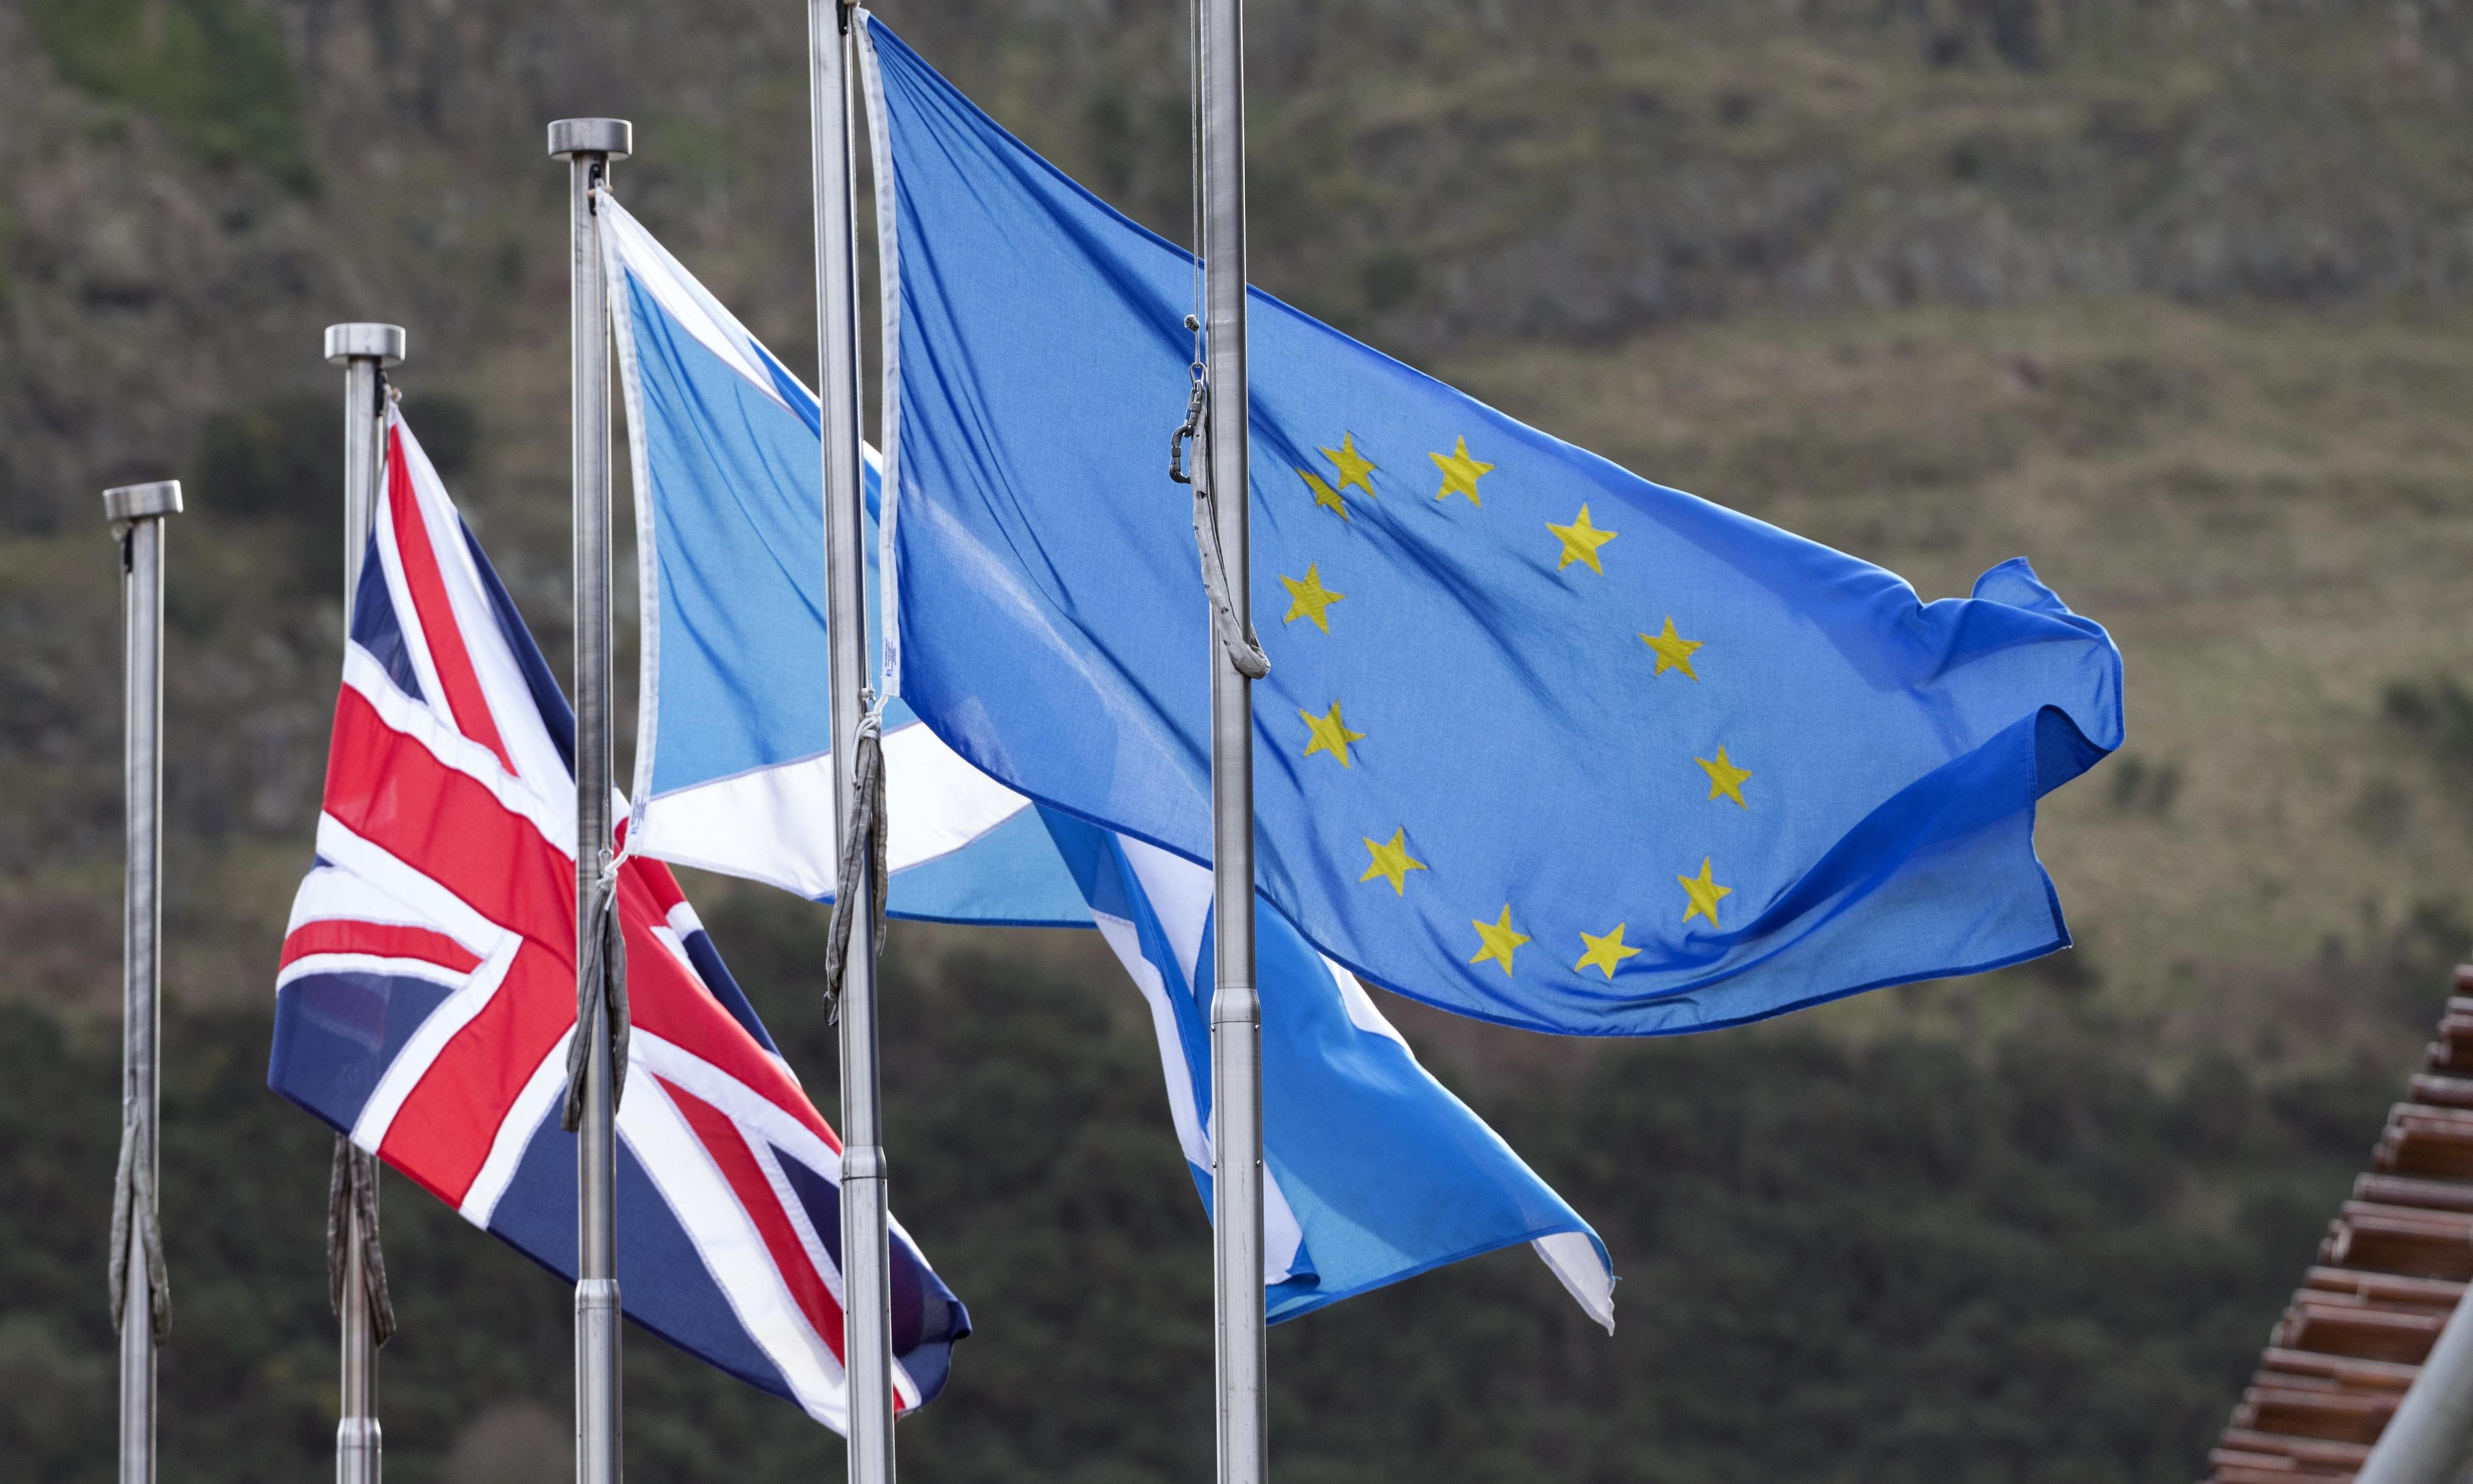 Scottish government wins vote to keep EU flag flying over Holyrood